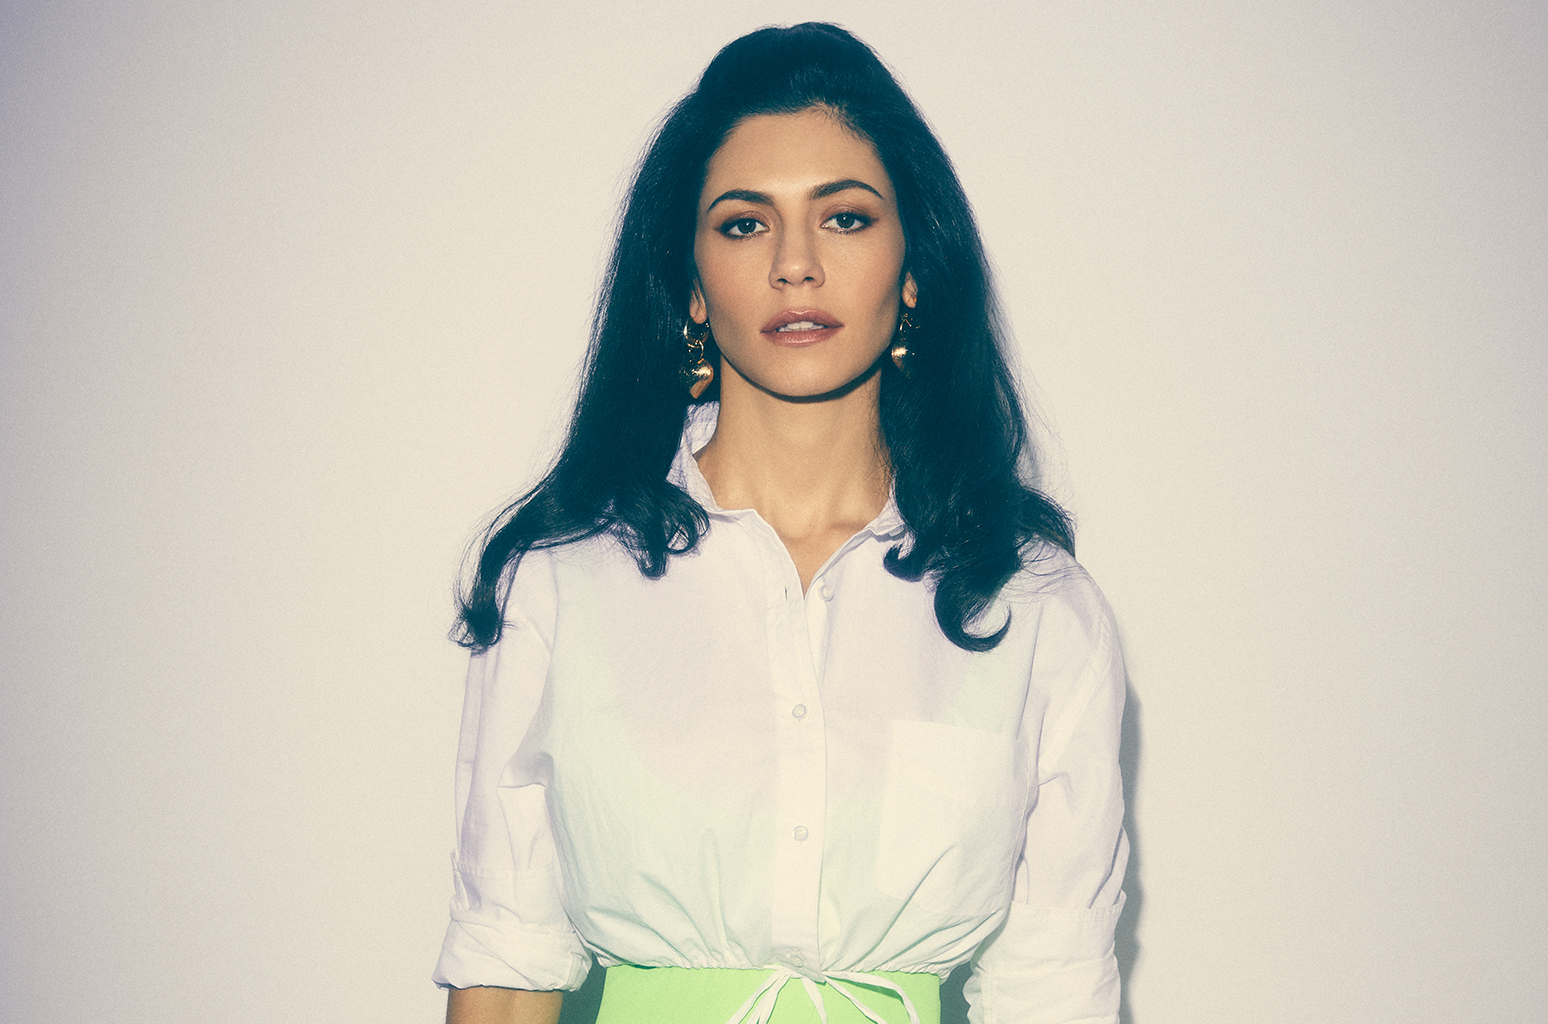 """Love + Fear - MARINA finally released both halves pf her fourth album this month and it is definitely worth your time. You can read my review for """"Love"""" here. The follow-up review for """"Fear"""" is on the MODA blog as well, so check it out!"""